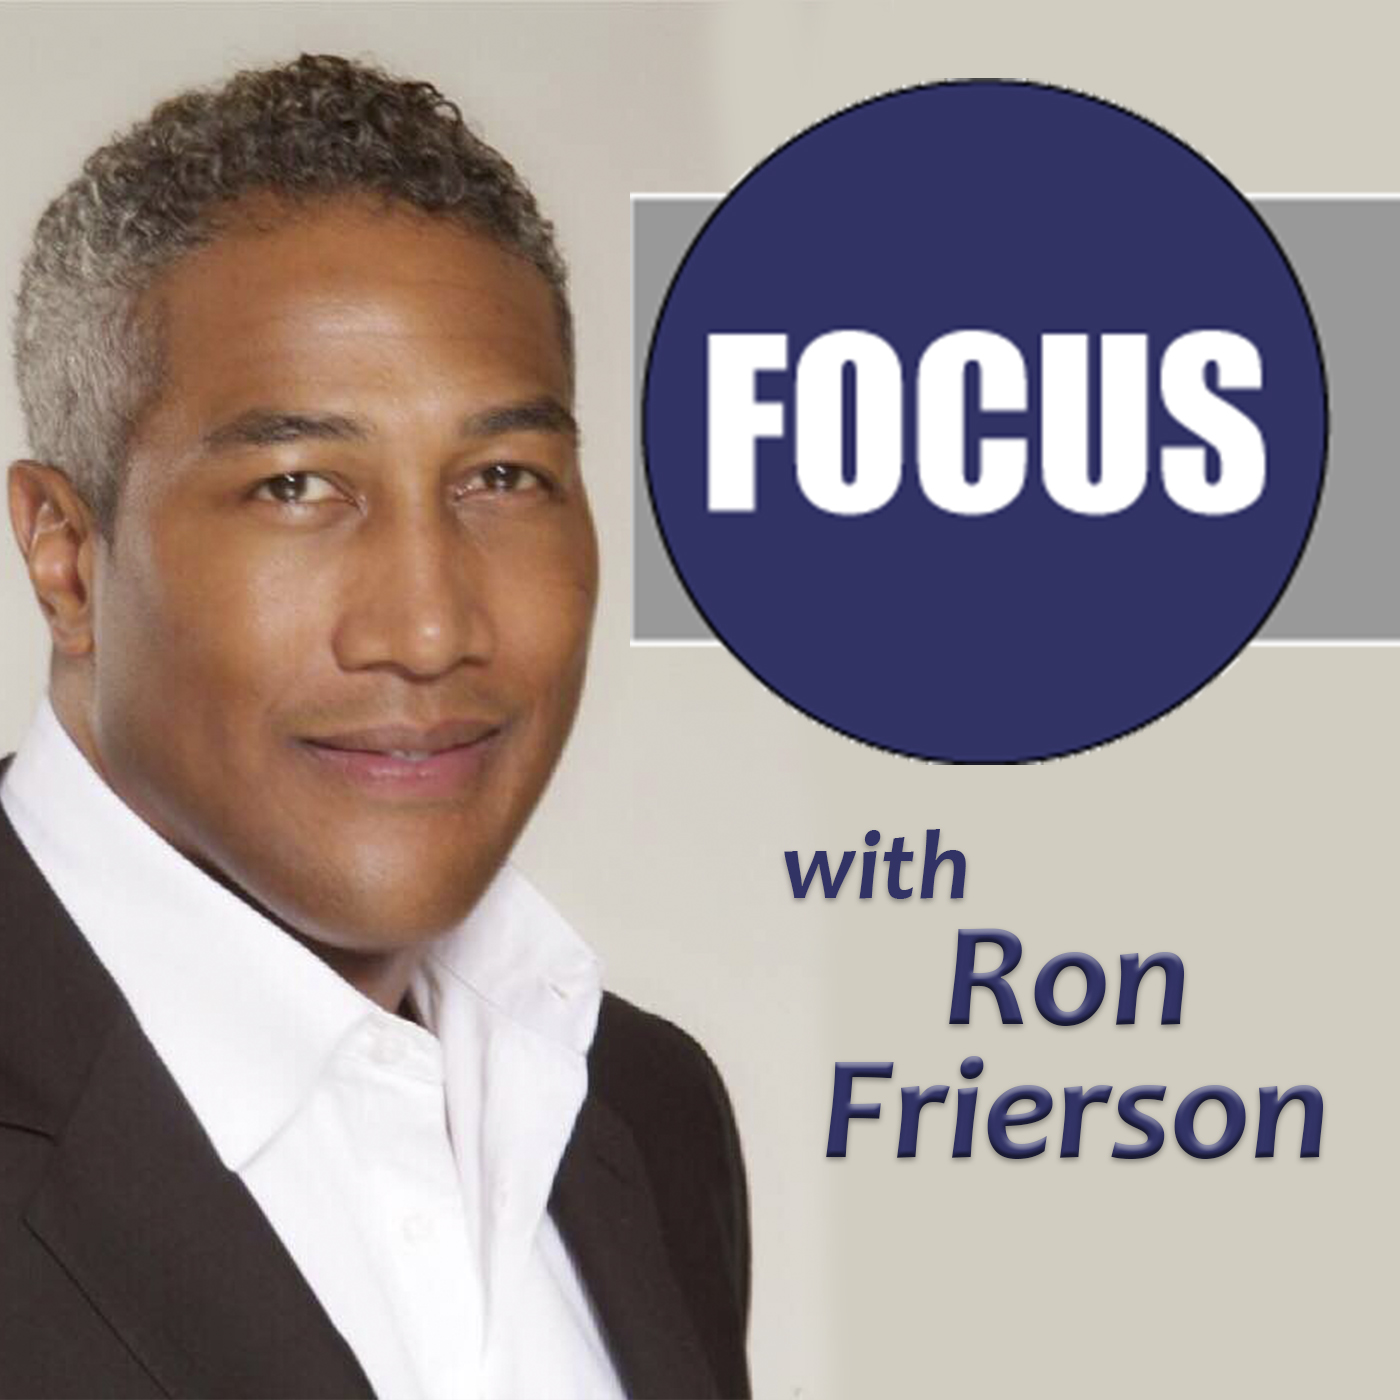 <![CDATA[FOCUS with Ron Frierson]]>